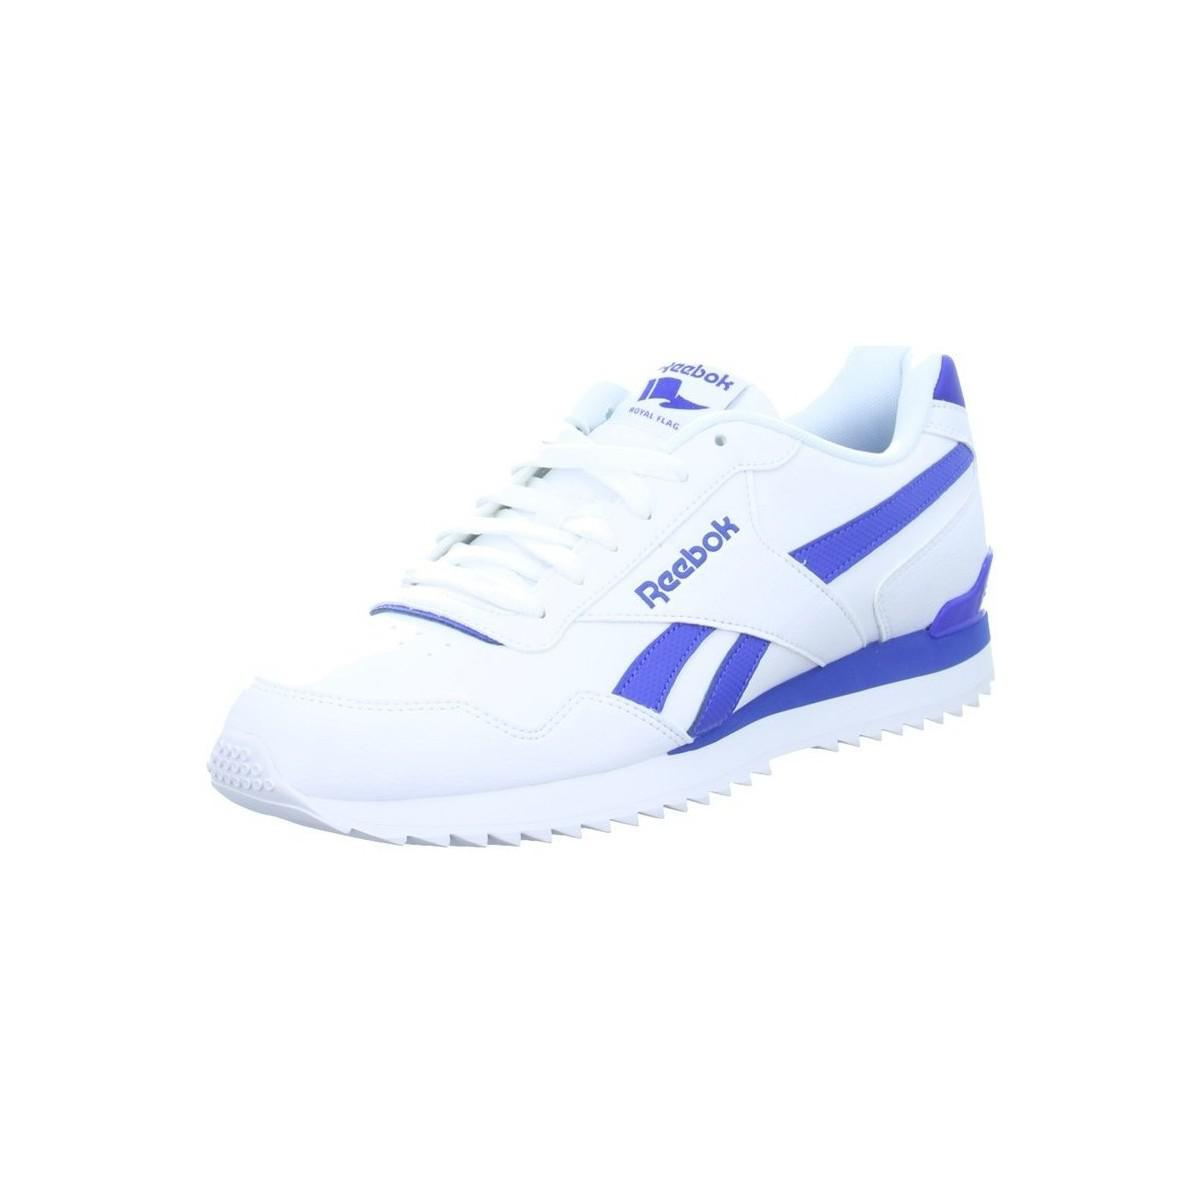 c2a0f039ee6 Reebok Royal Glide Rplclp Men s Shoes (trainers) In White in White ...